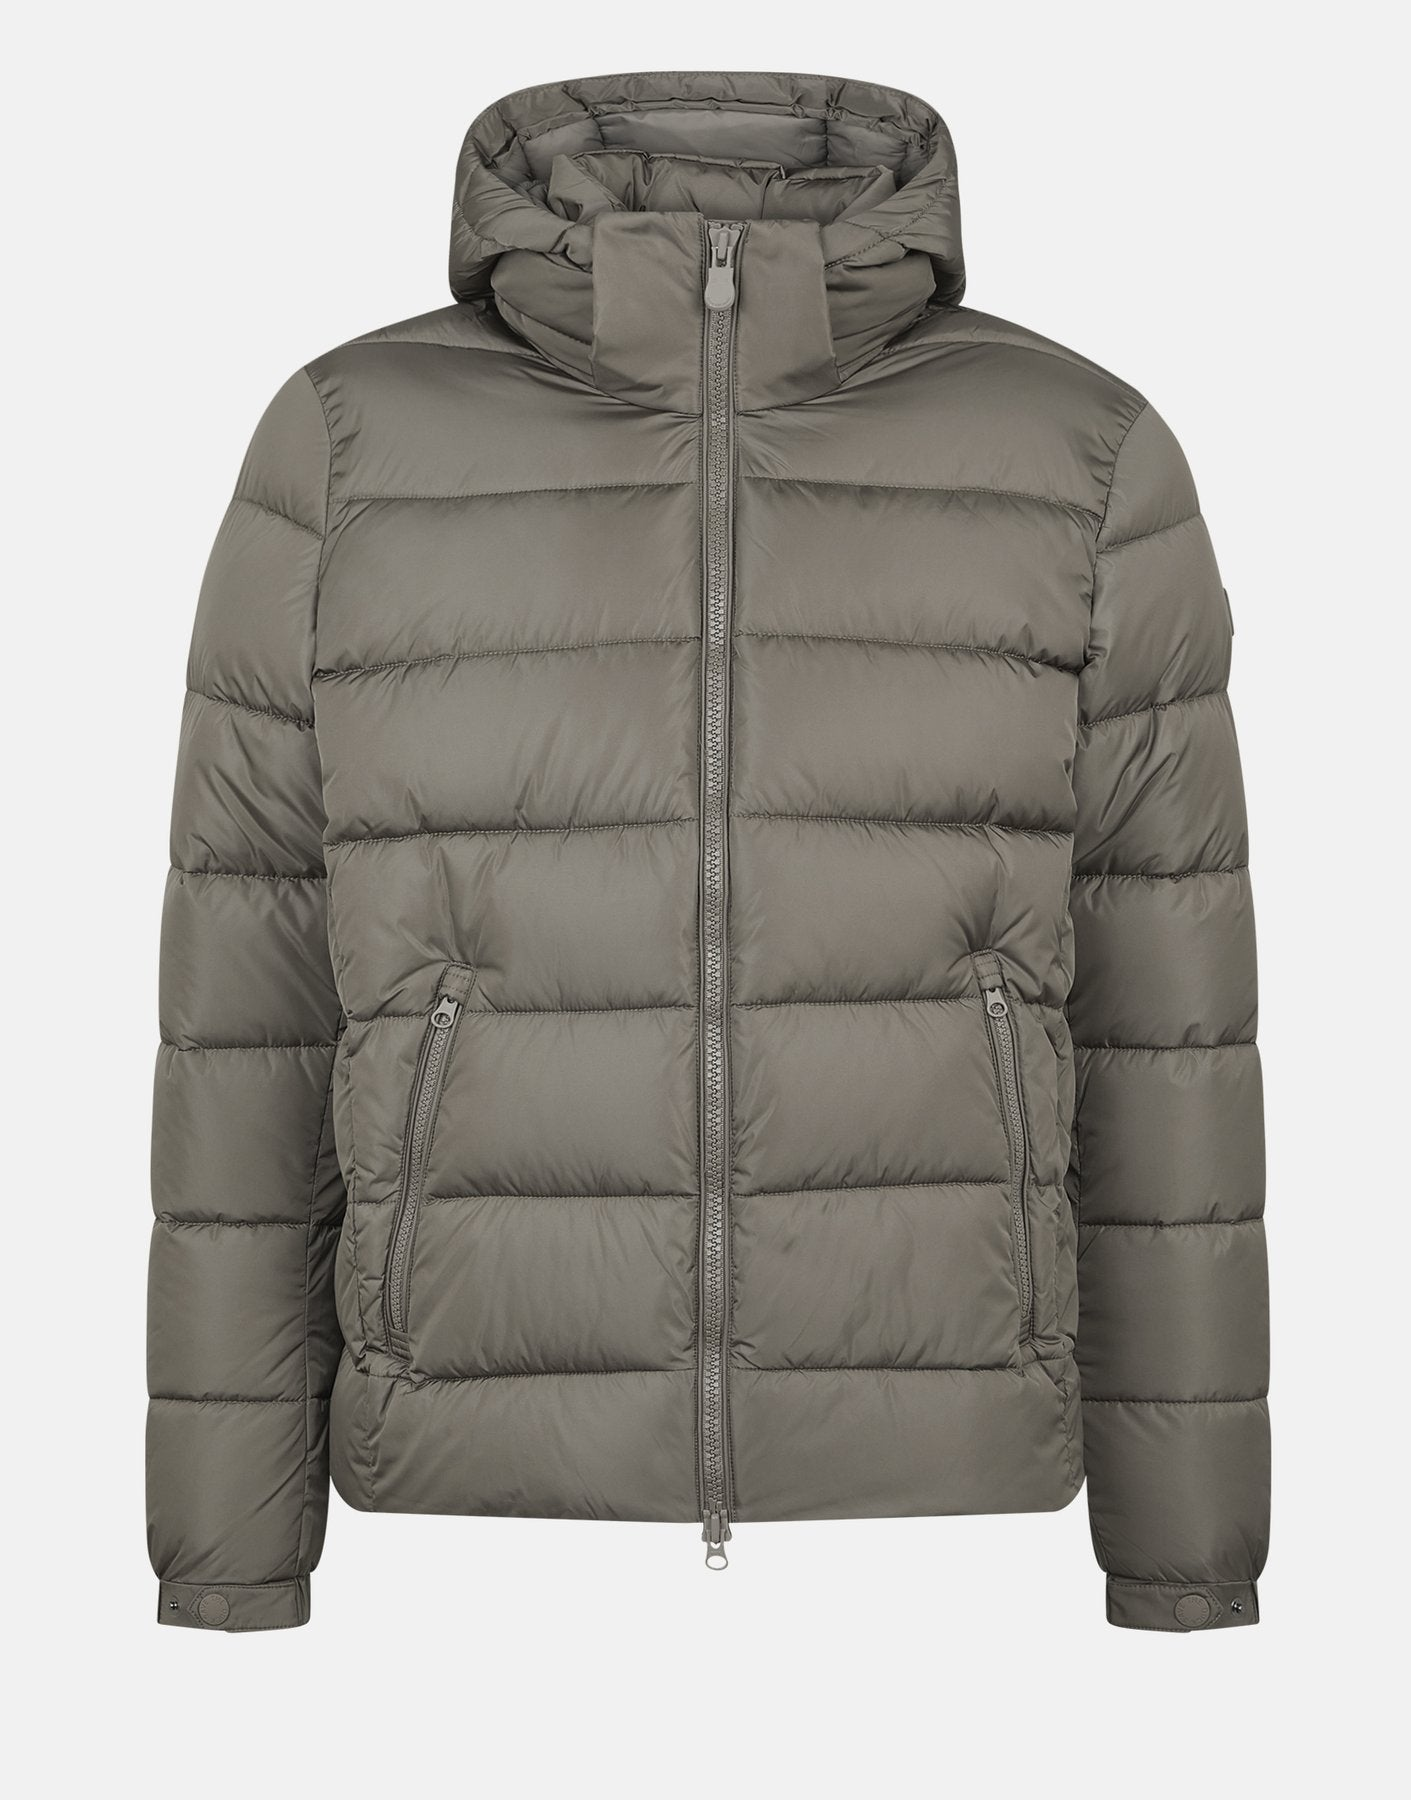 See this material featured on the Men's MEGA Hooded Puffer Jacket.